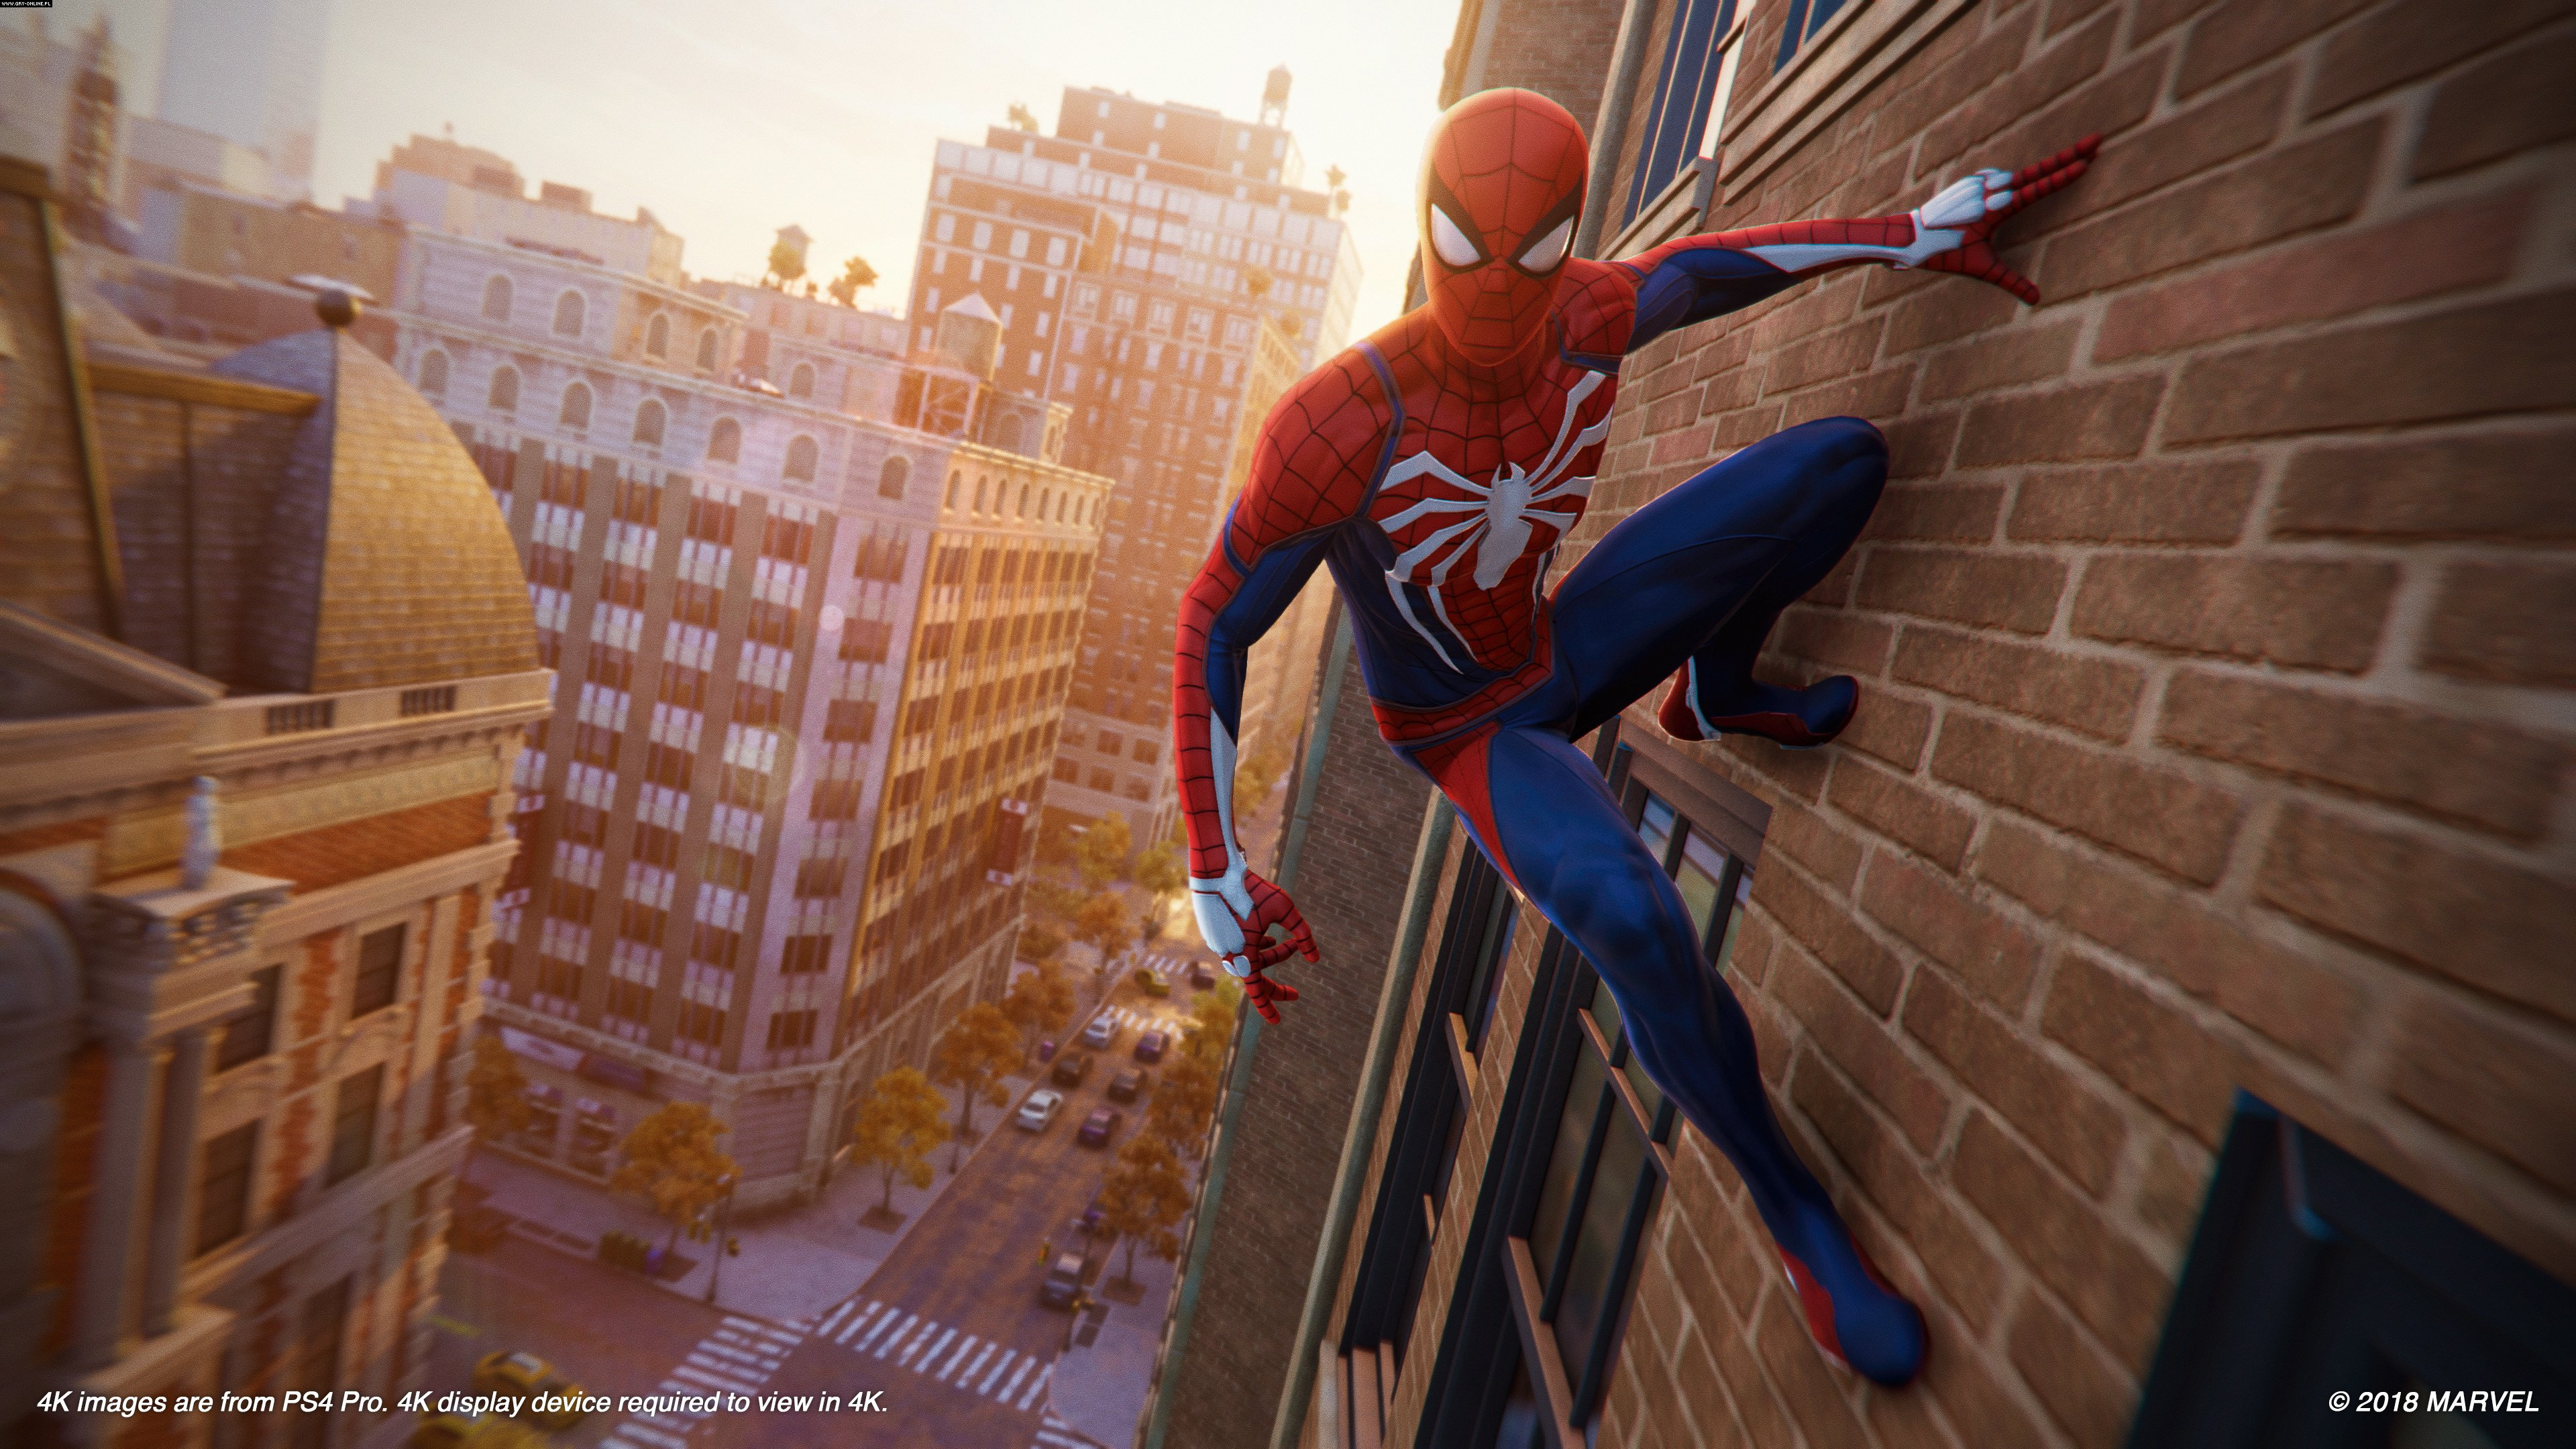 Spider-Man PS4 Games Image 9/37, Insomniac Games, Sony Interactive Entertainment